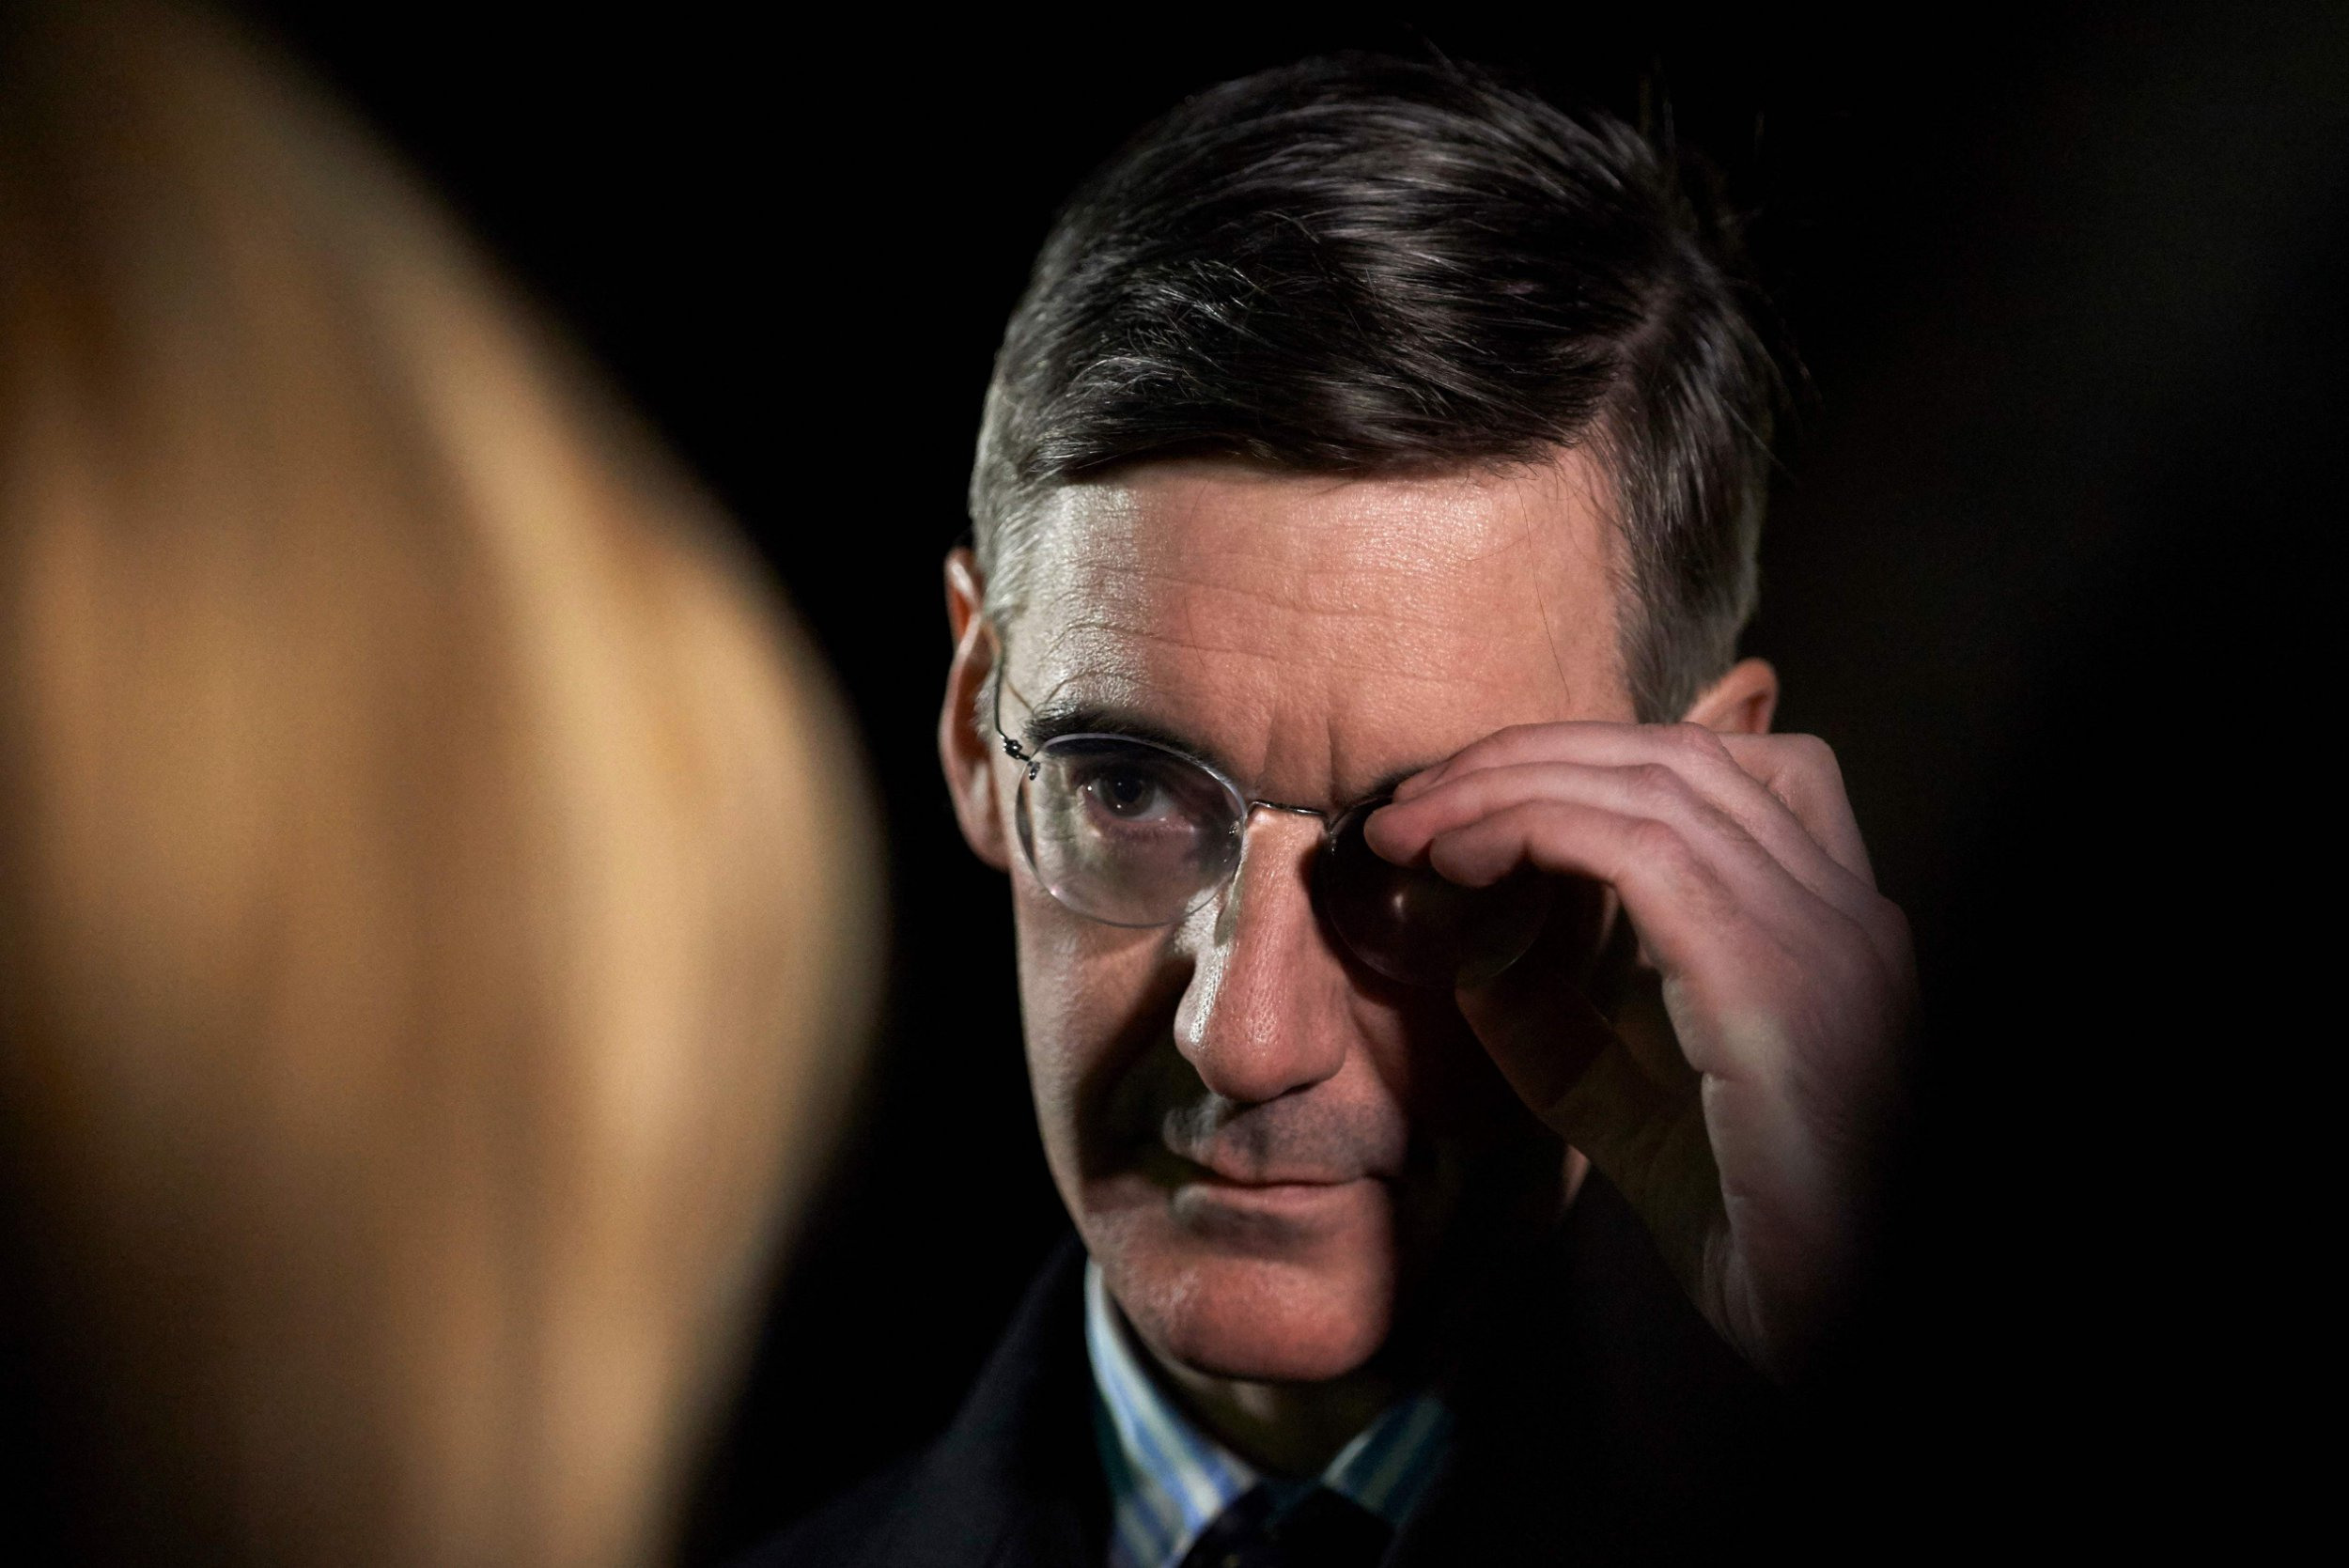 Conservative MP Jacob Rees-Mogg speaks to the media next to Parliament in central London after Britain's Prime Minister Theresa May won a confidence vote on December 12, 2018. (Photo by Niklas HALLE'N / AFP)NIKLAS HALLE'N/AFP/Getty Images